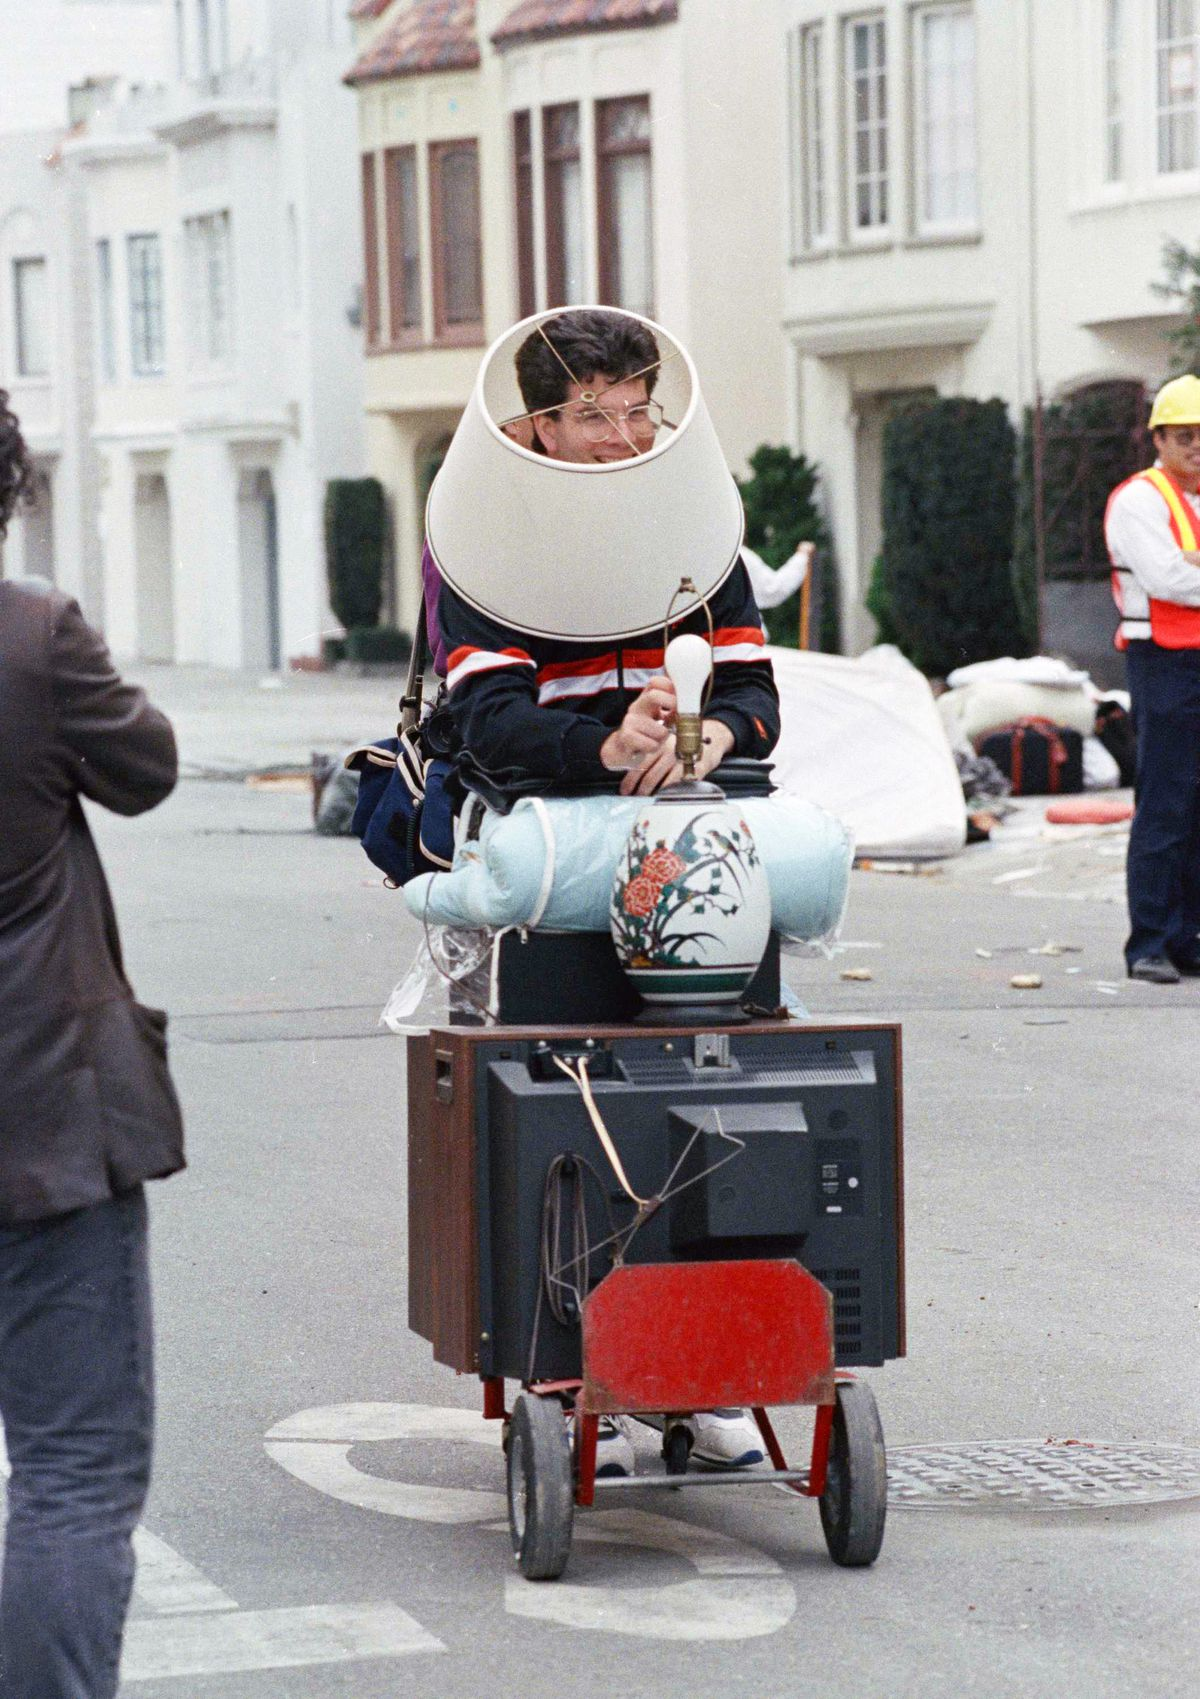 A man with a lampshade on his head as he pushed around a TV, lamp, and other belongings on a city street.